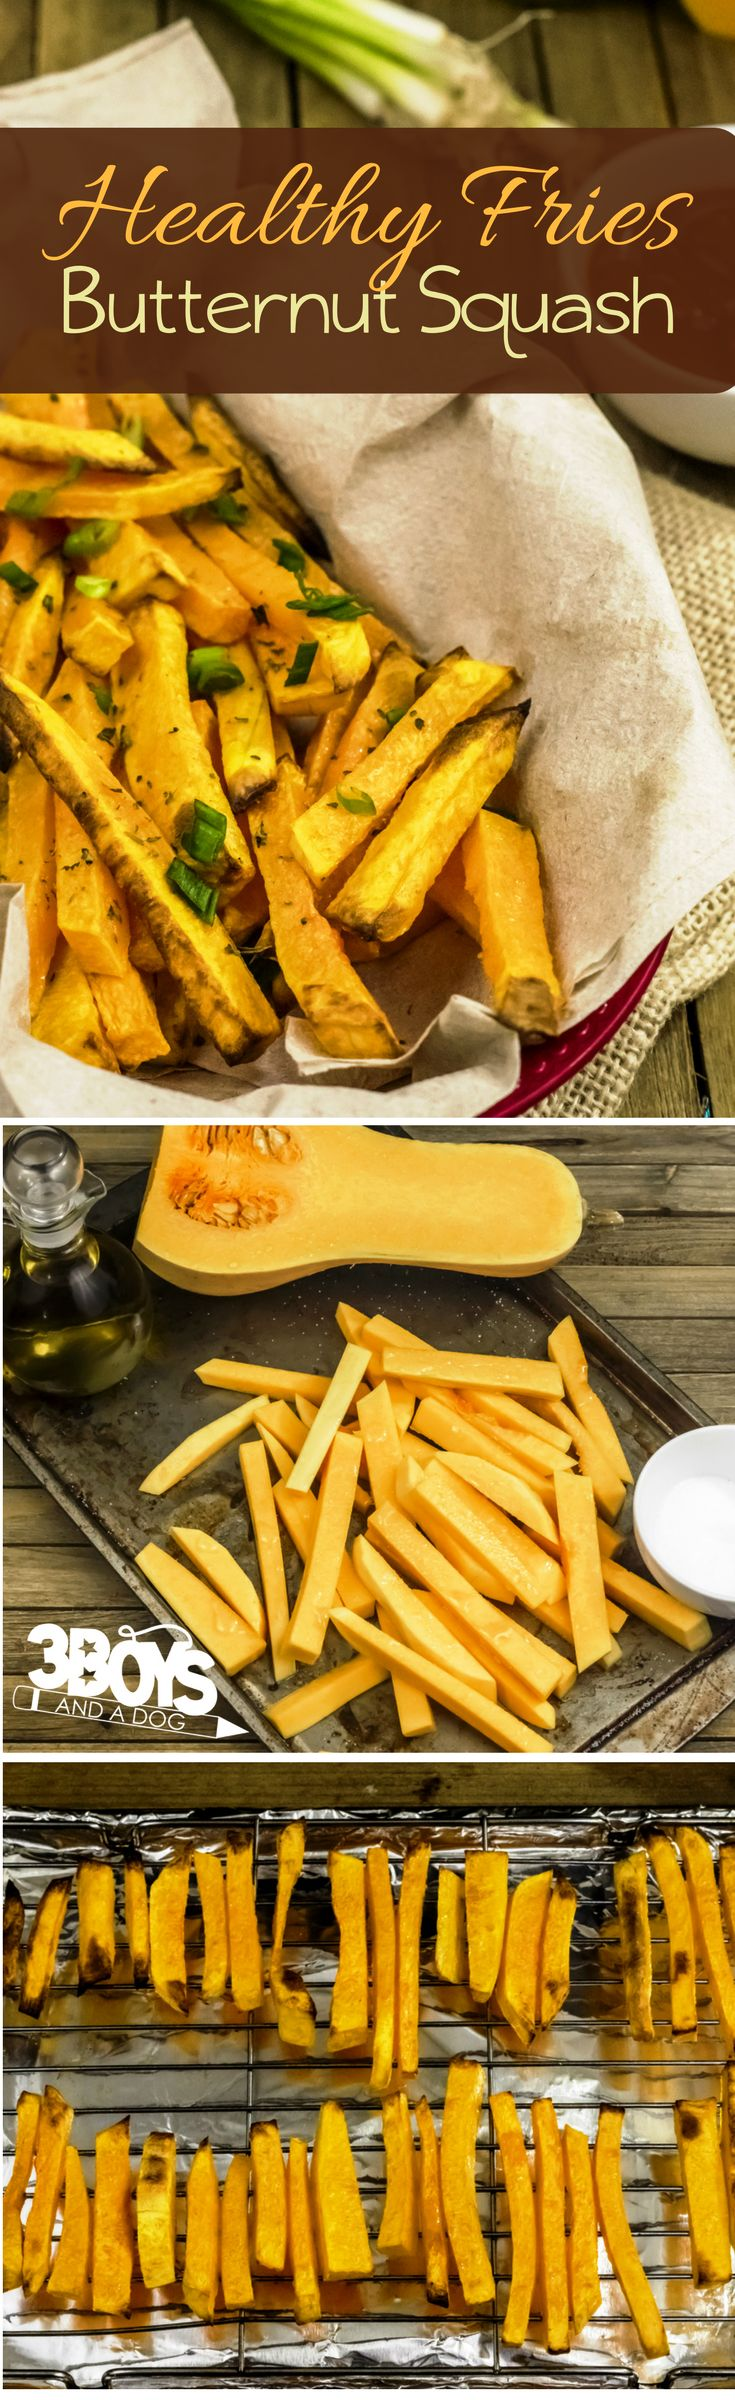 If you are a french fry junkie like me, you will need to supplement your greasy craving for a healthier version of fries!  This is where these delicious and Healthy Butternut Squash Fries come in!